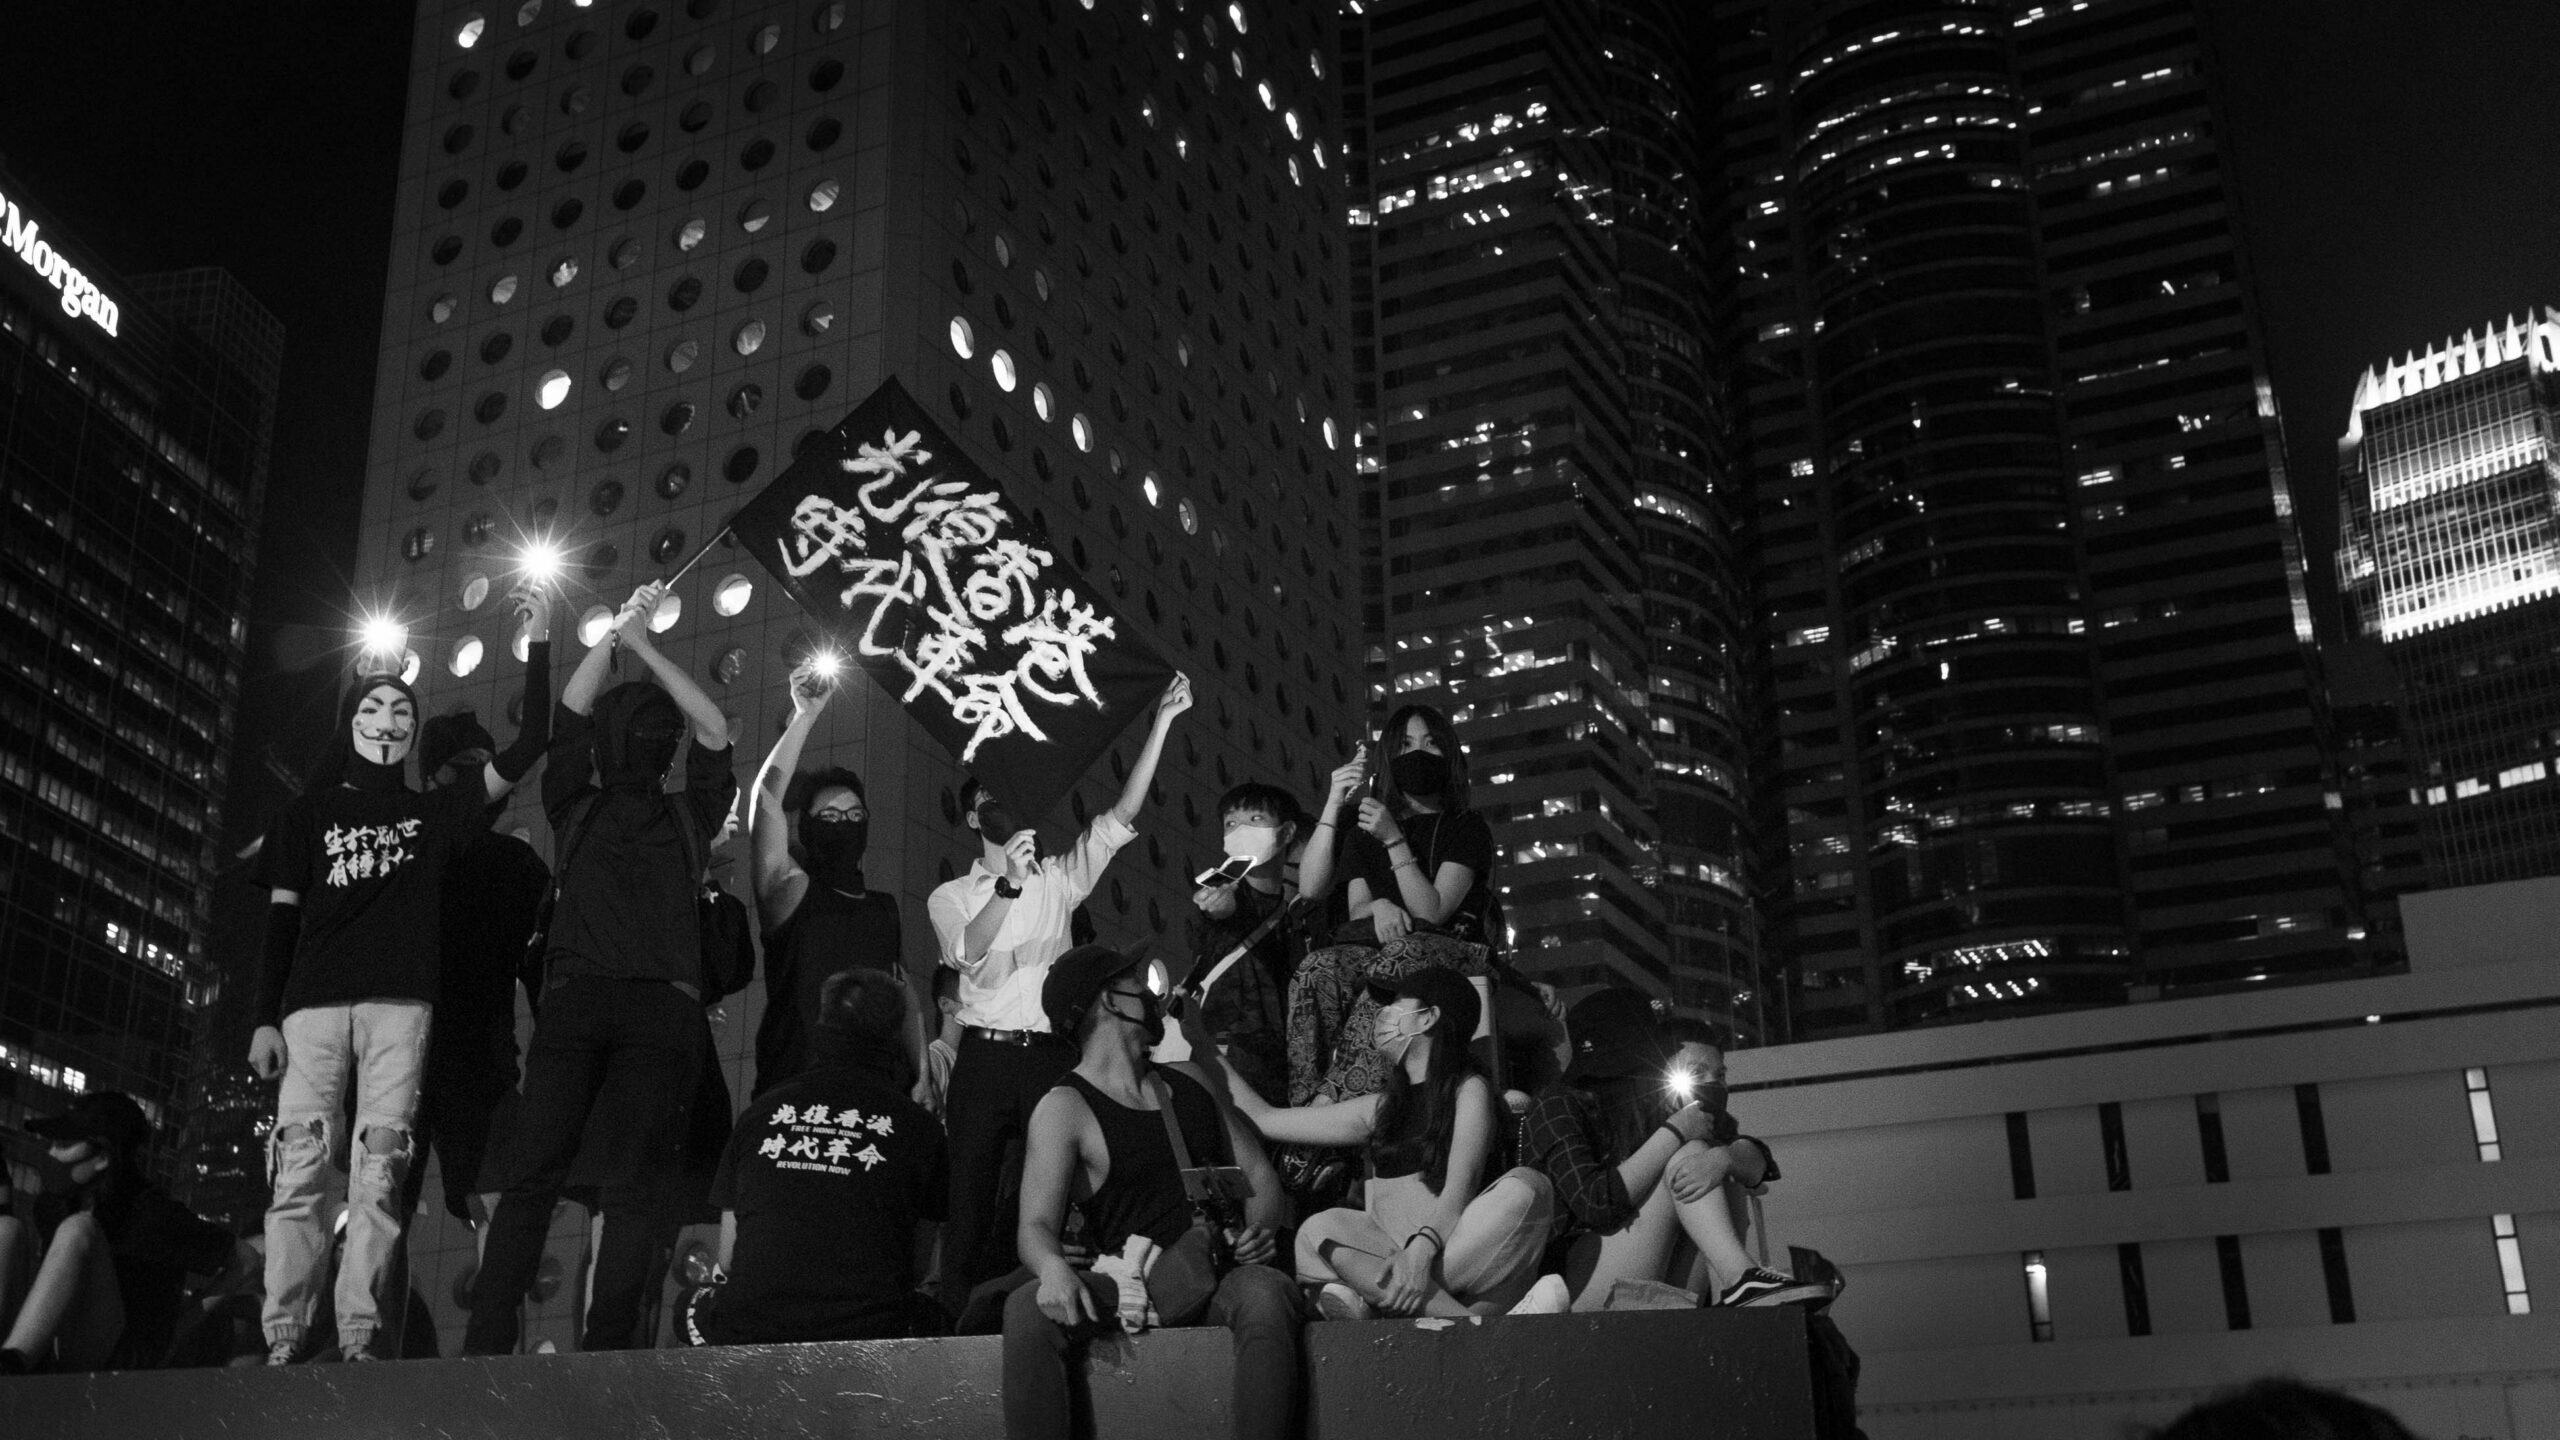 An Evening with the Hong Kong Movement